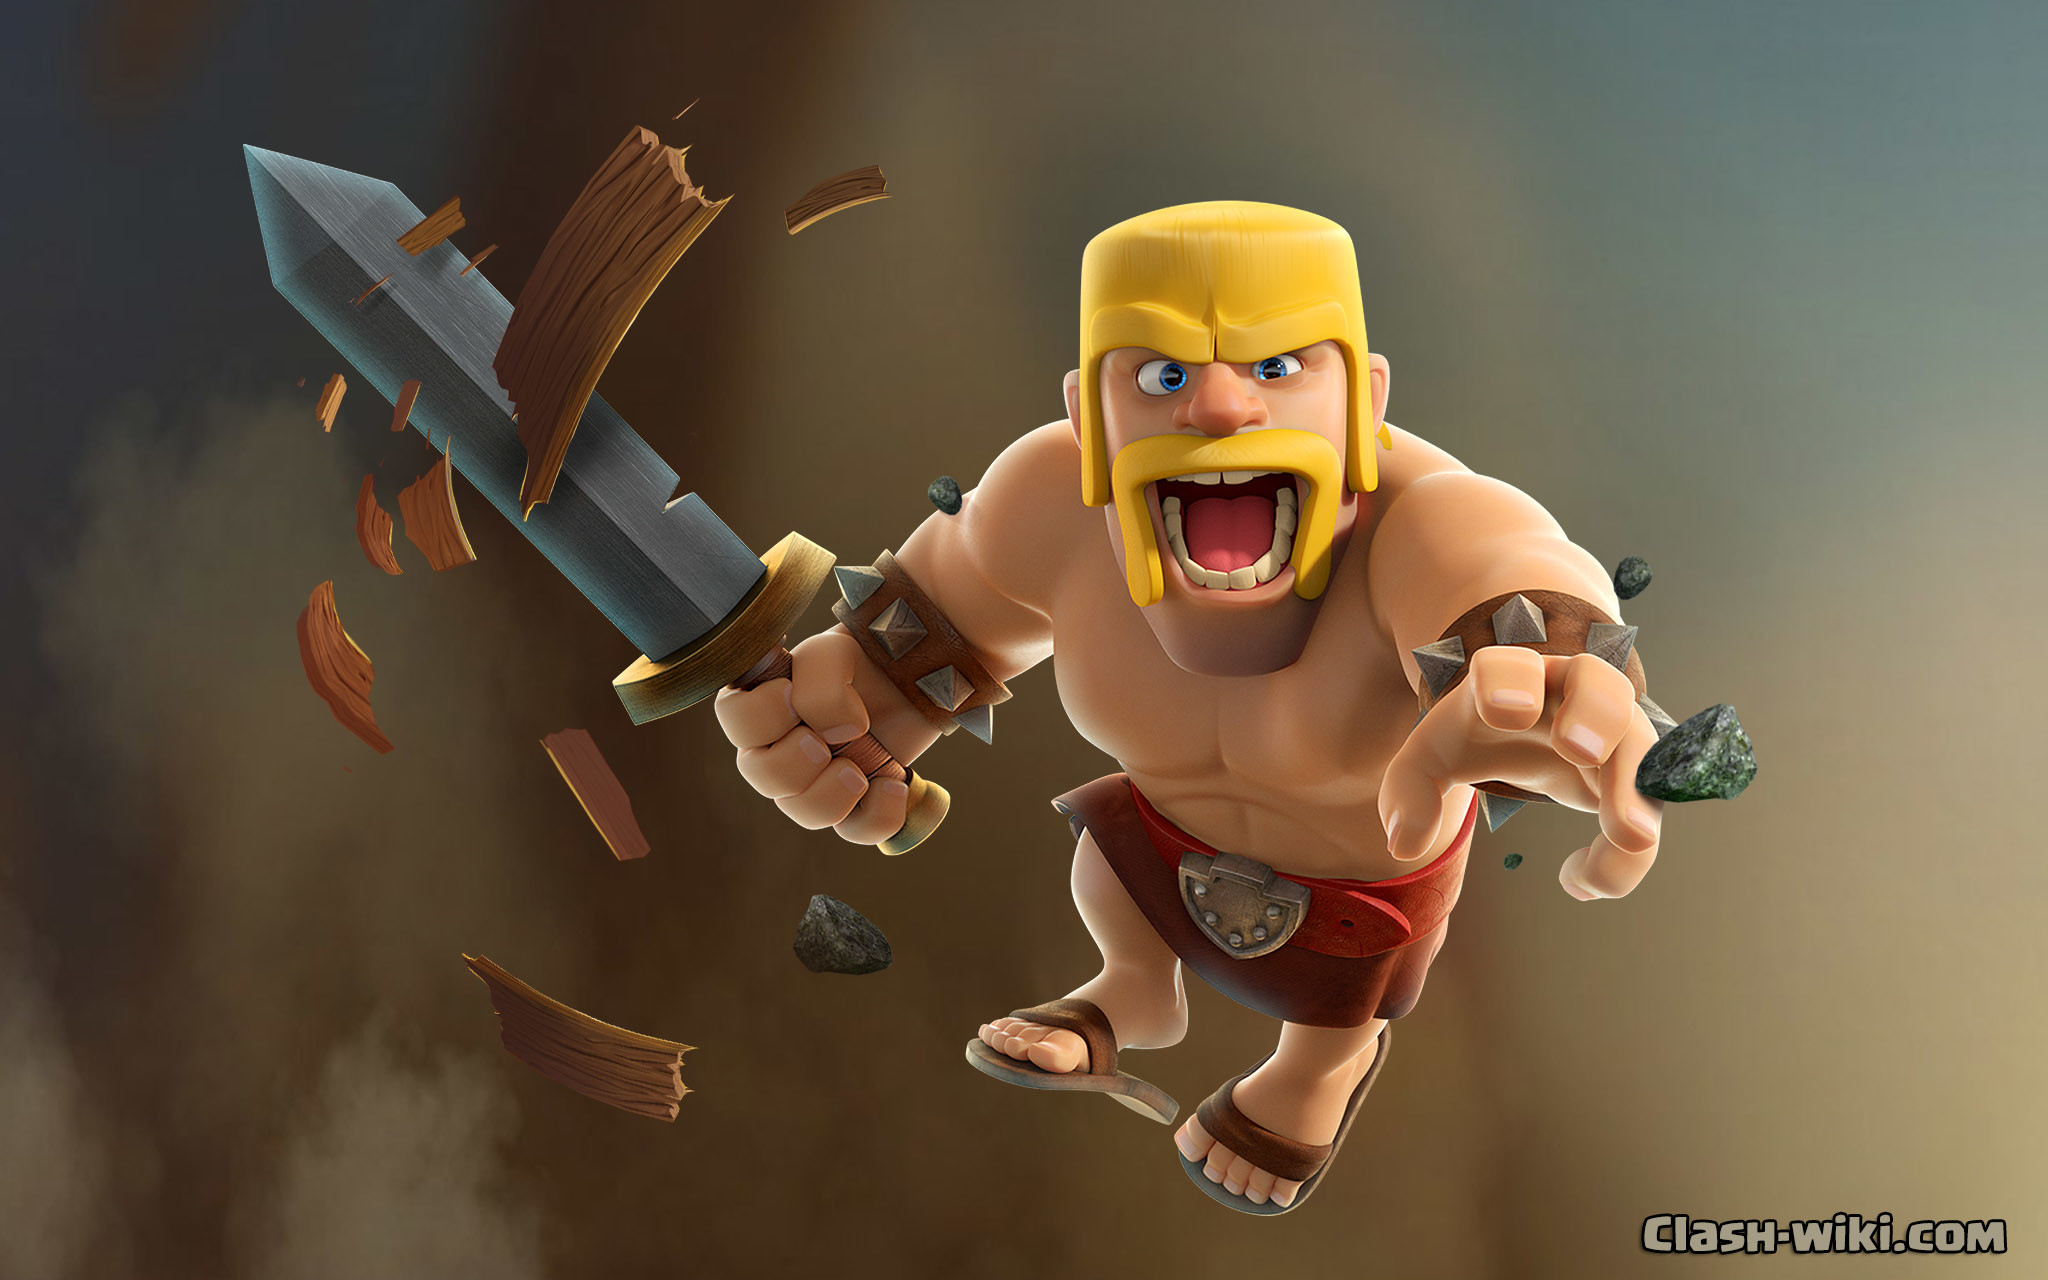 The Barbarian – Serious about battle, casual about footwear